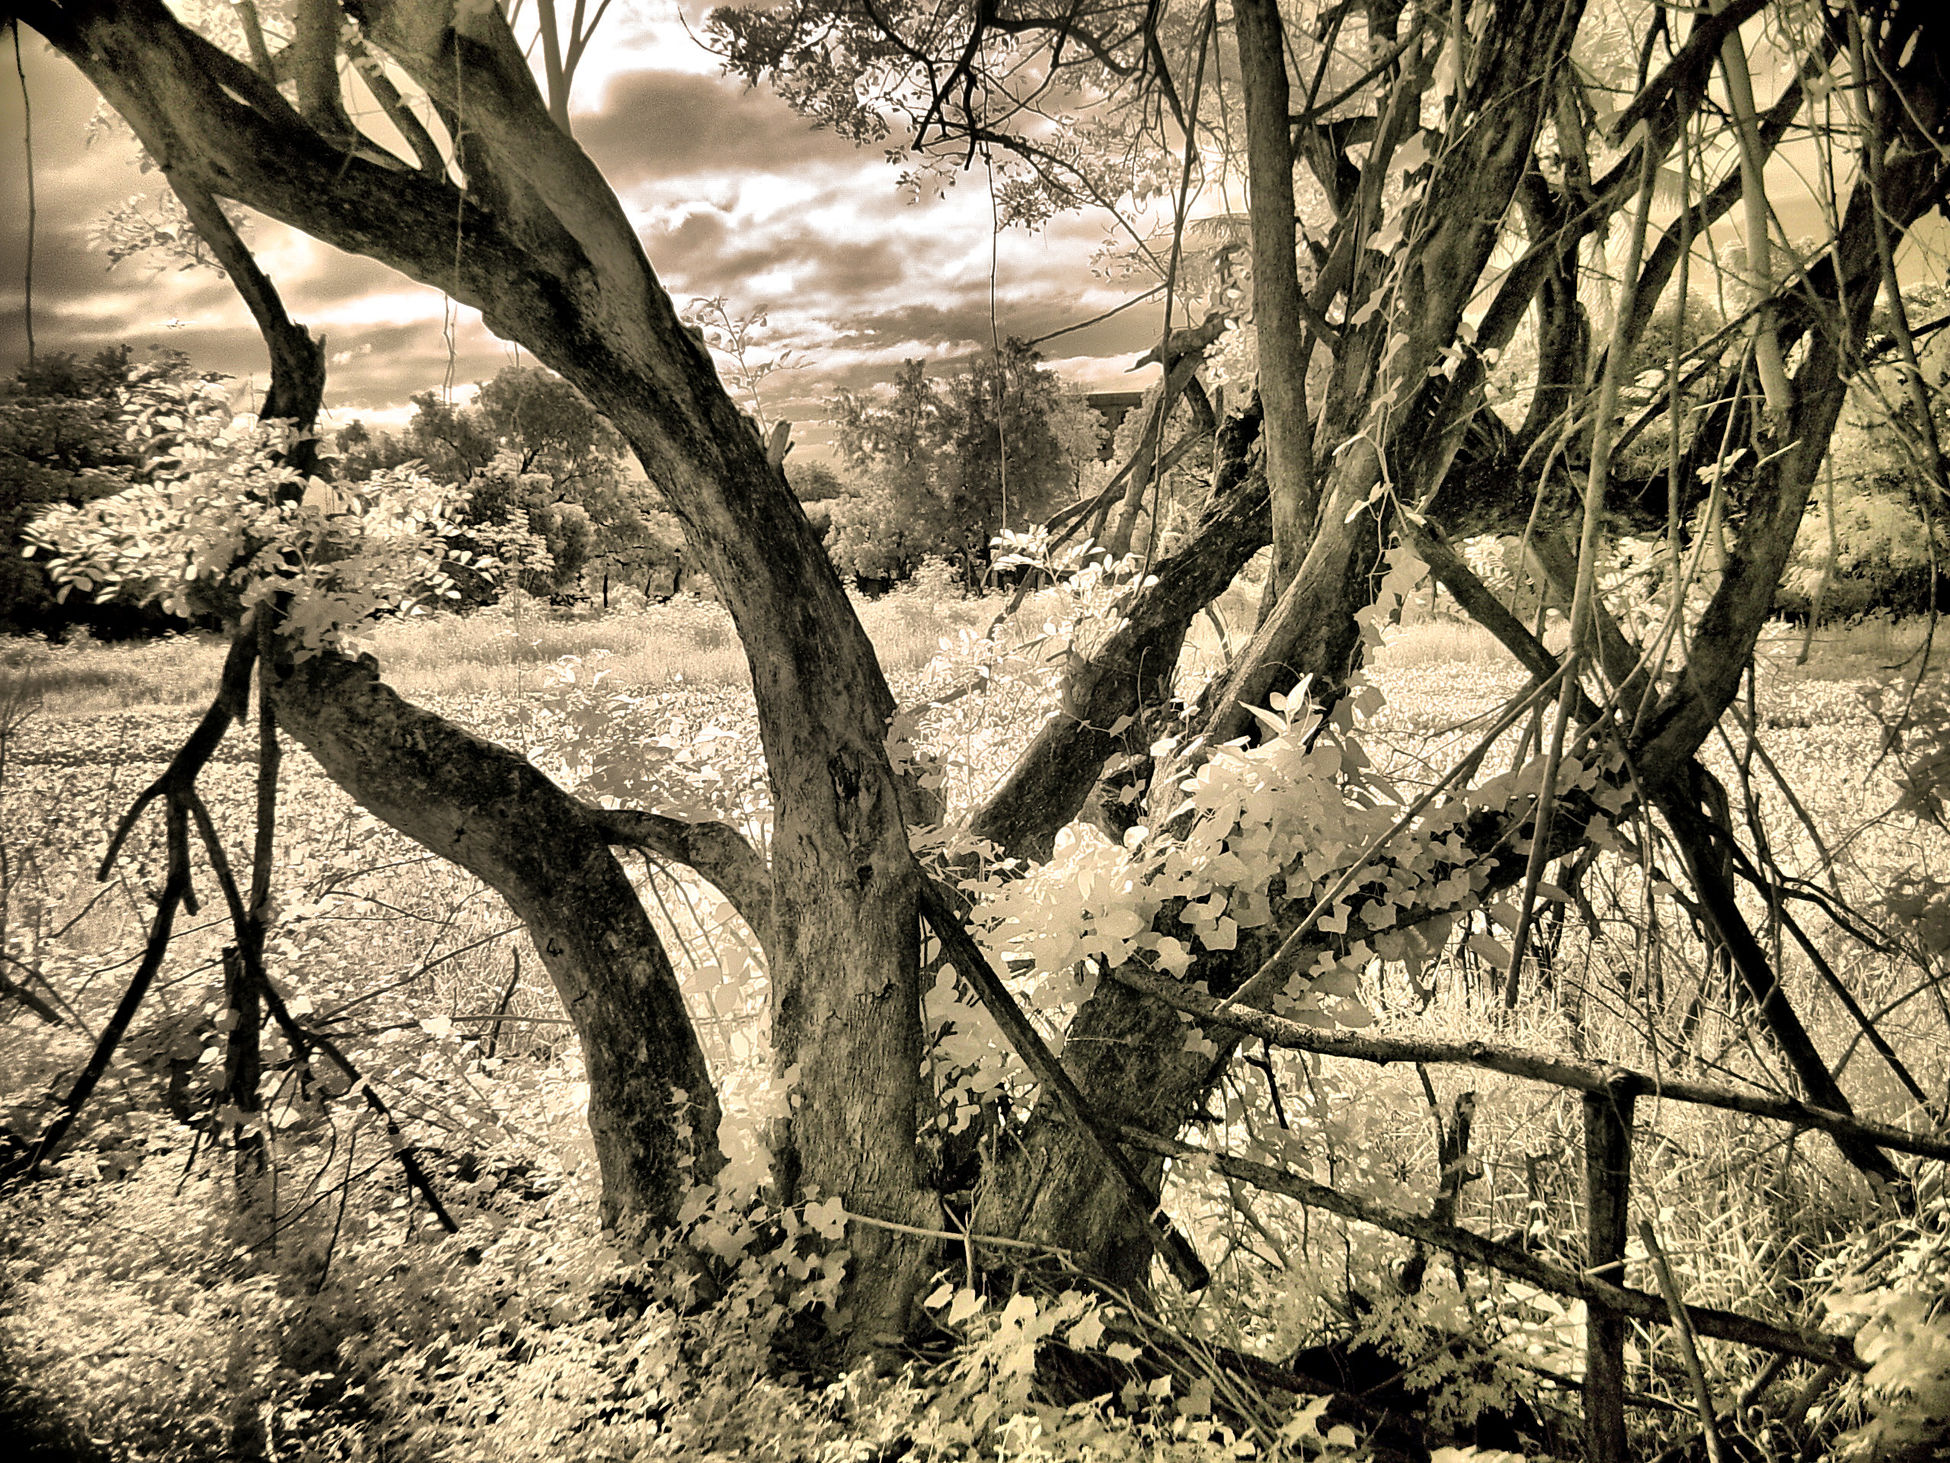 Secret garden Tree Trunk Tree Nature Scenics Beauty In Nature Outdoors Infrared